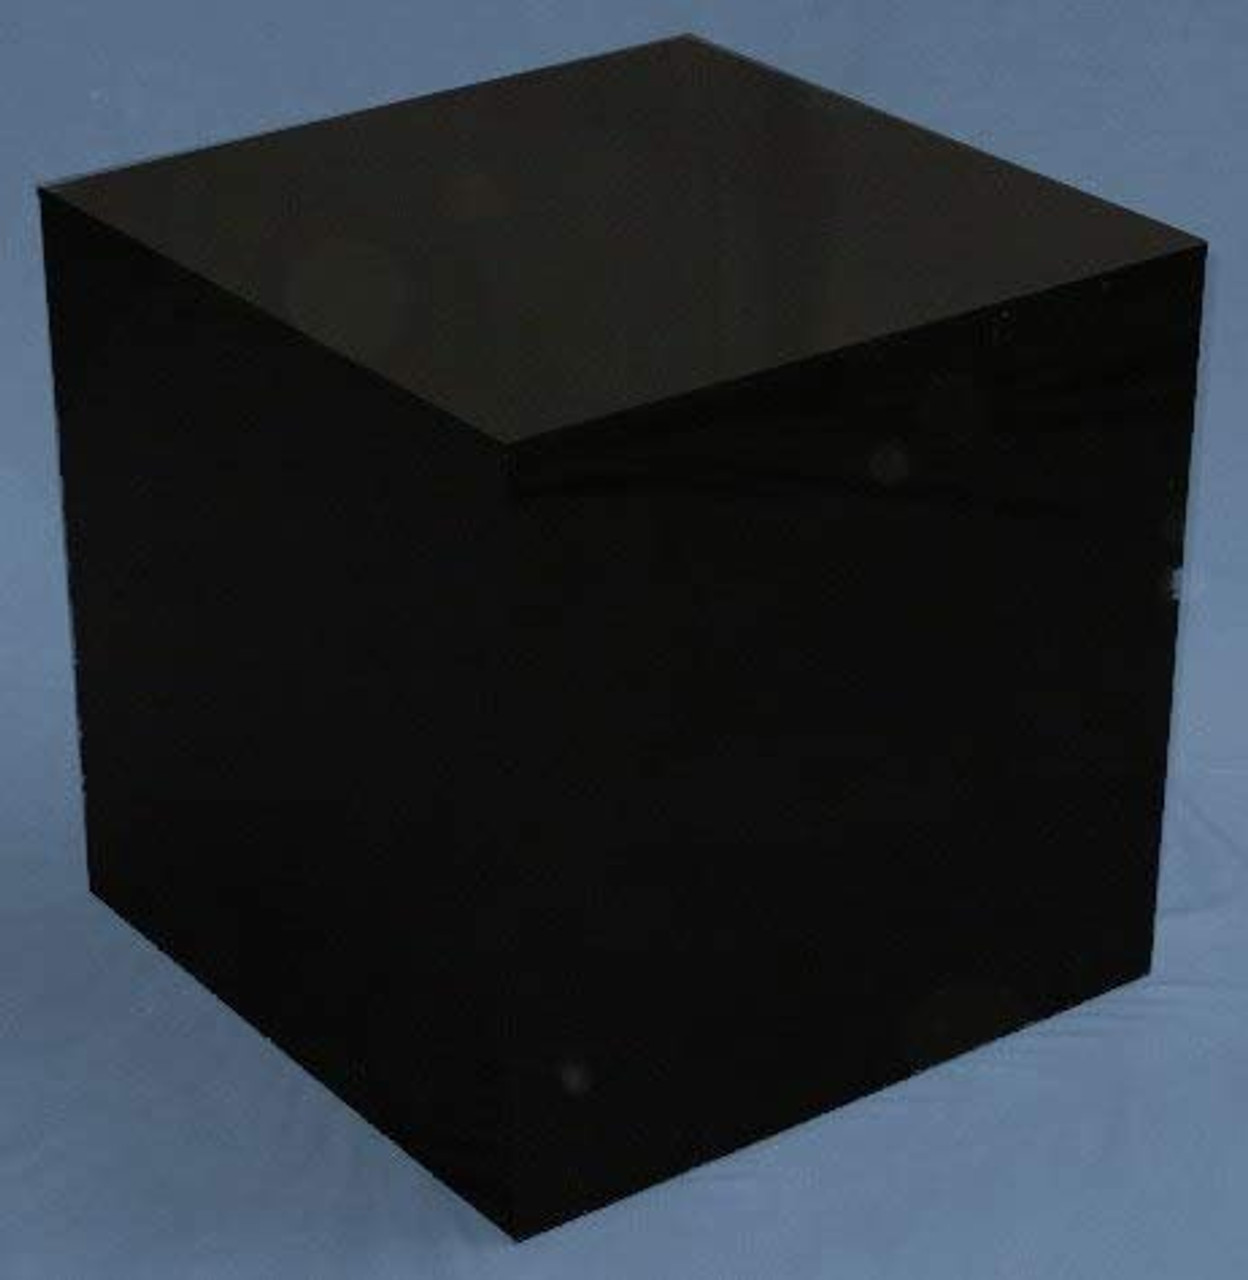 Black Large Square Acrylic Display Cube, 20 Inch